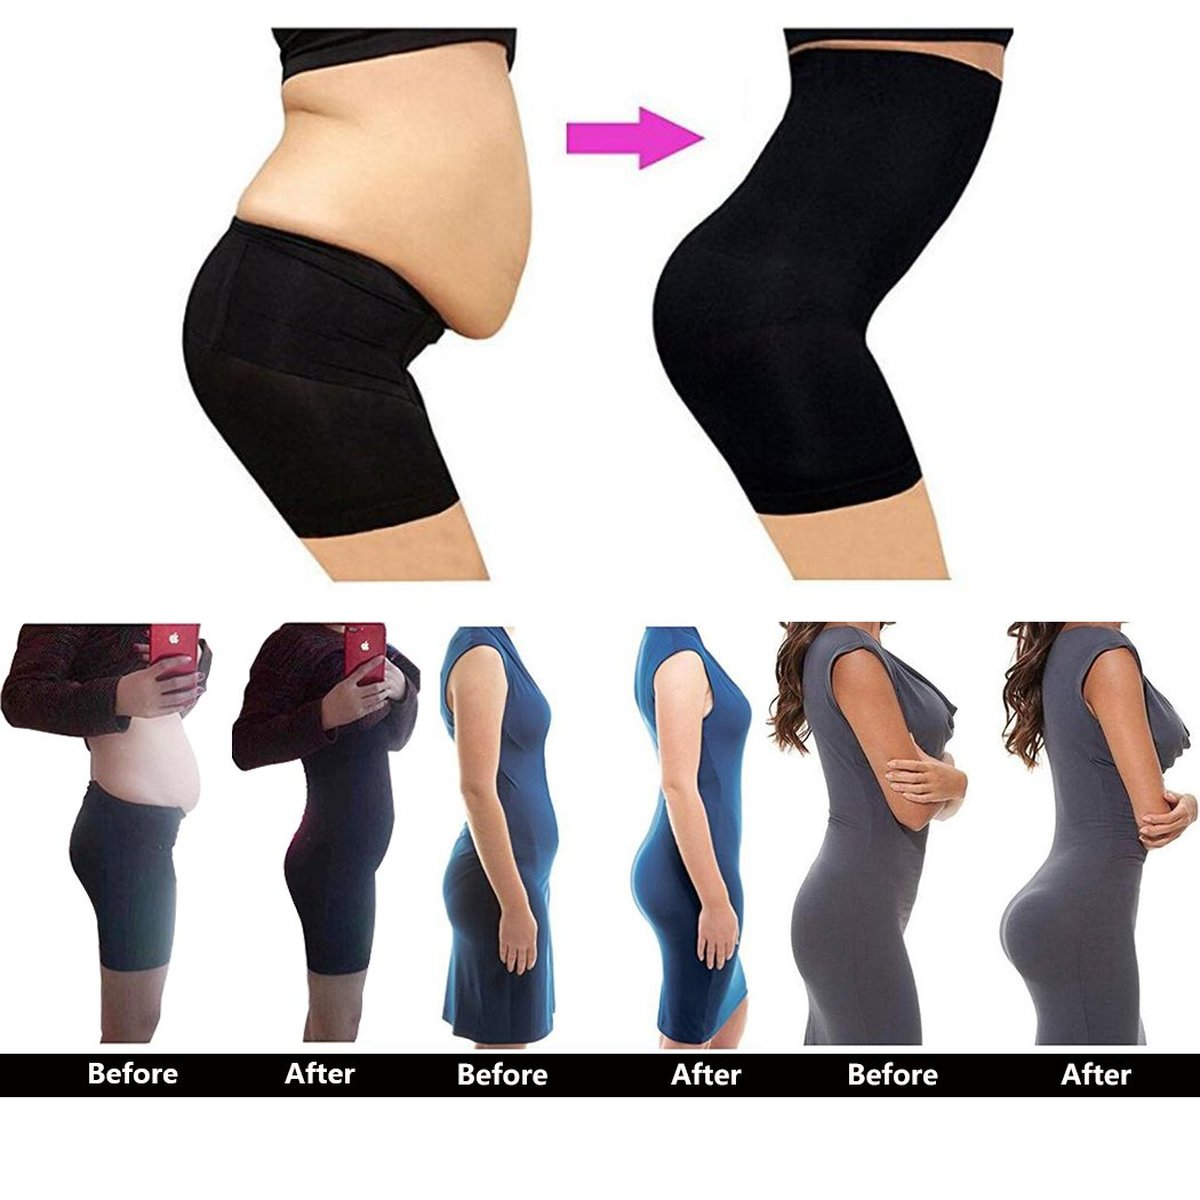 Body Shapers Thigh Slimmer Tummy Control Shorts Pants Waist Trainer For Women Slimming Underwear Butt Lifter Seamless Panties in Control Panties from Underwear Sleepwears